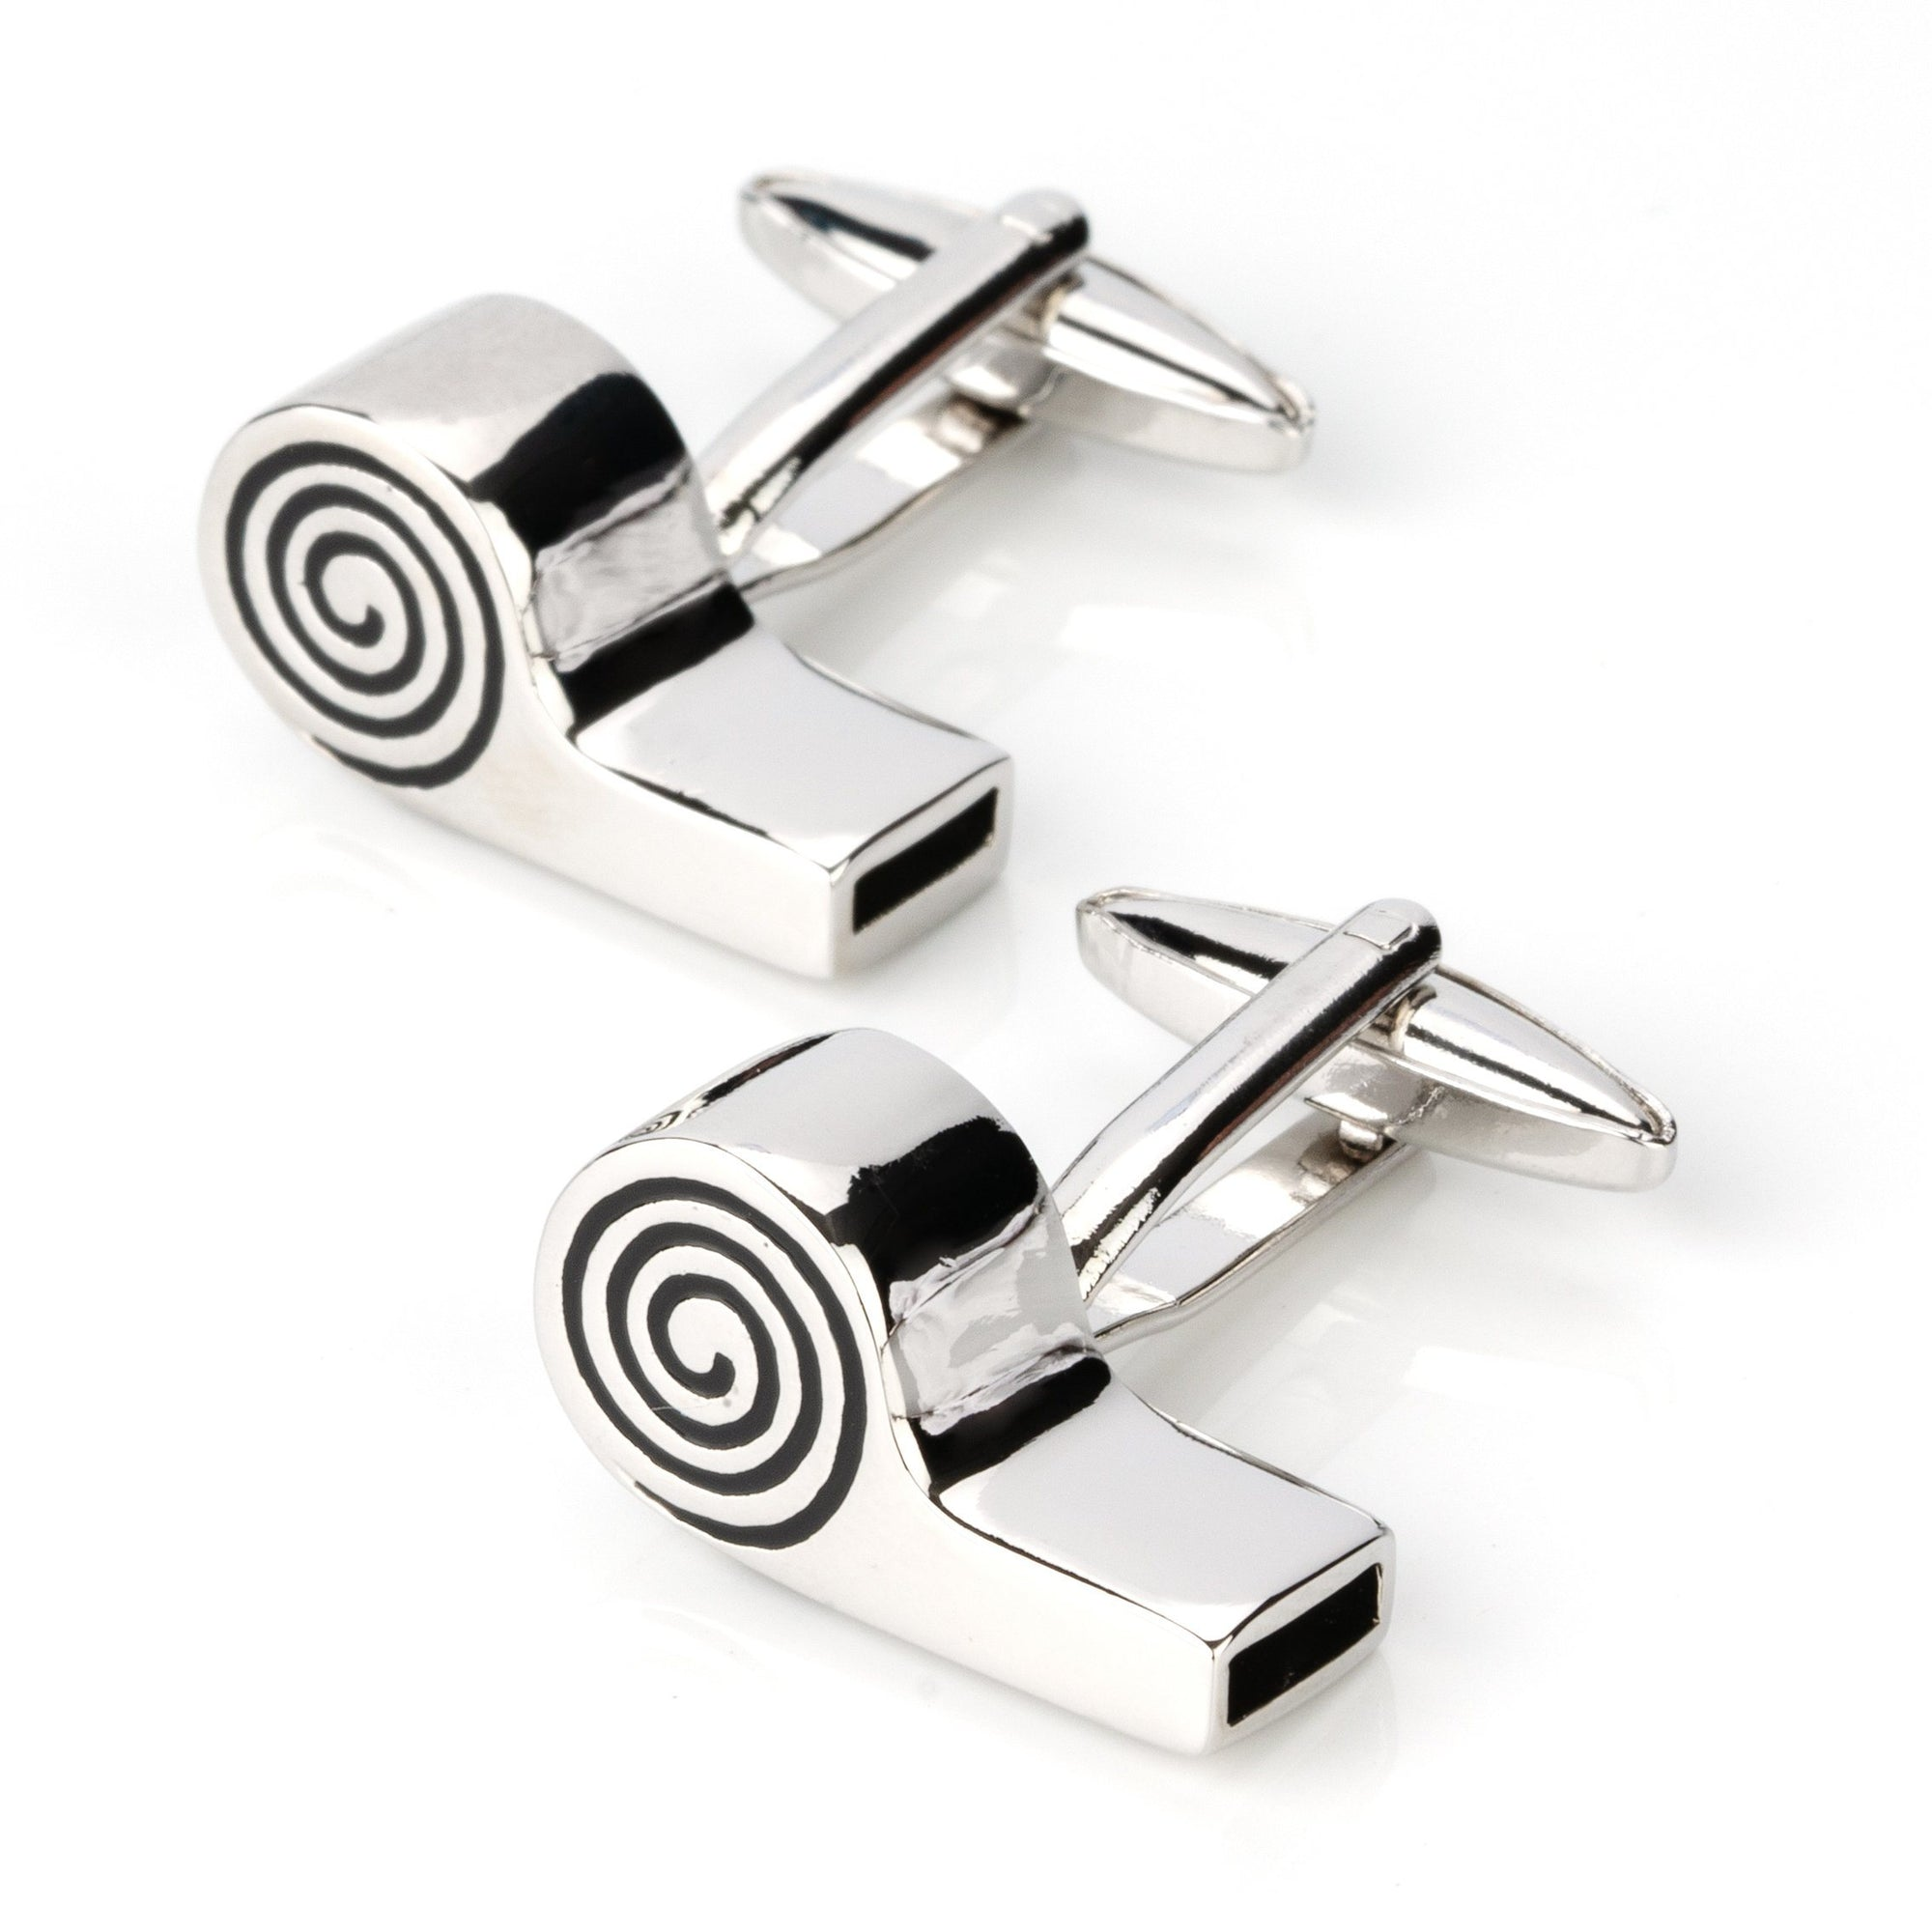 Working Referee Whistle Cufflinks, Novelty Cufflinks, Cuffed.com.au, CL4290, Functional, Sports, Clinks Australia